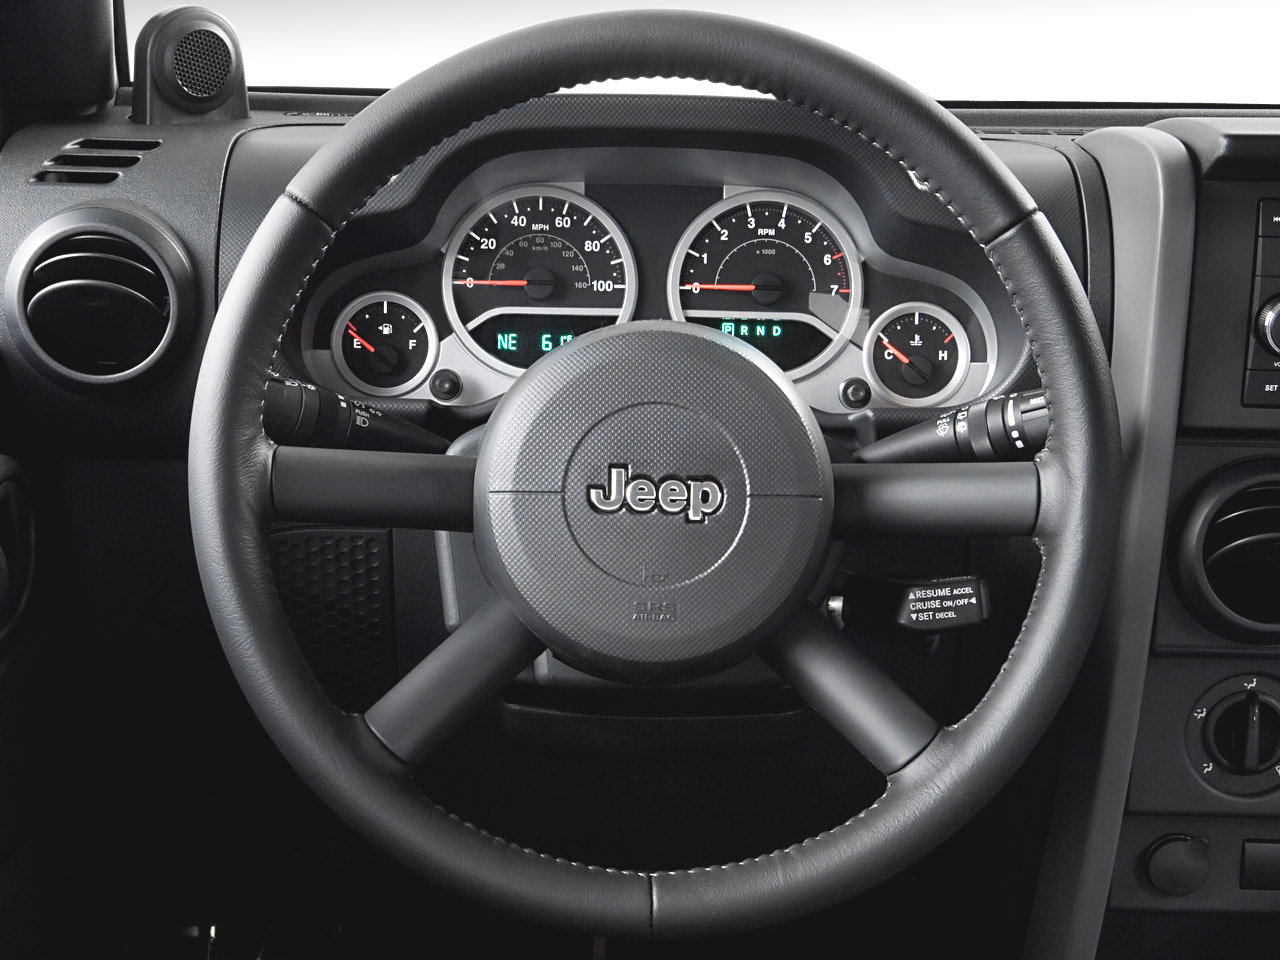 2007 Jeep Wrangler AllAccess - Latest News, Features, and